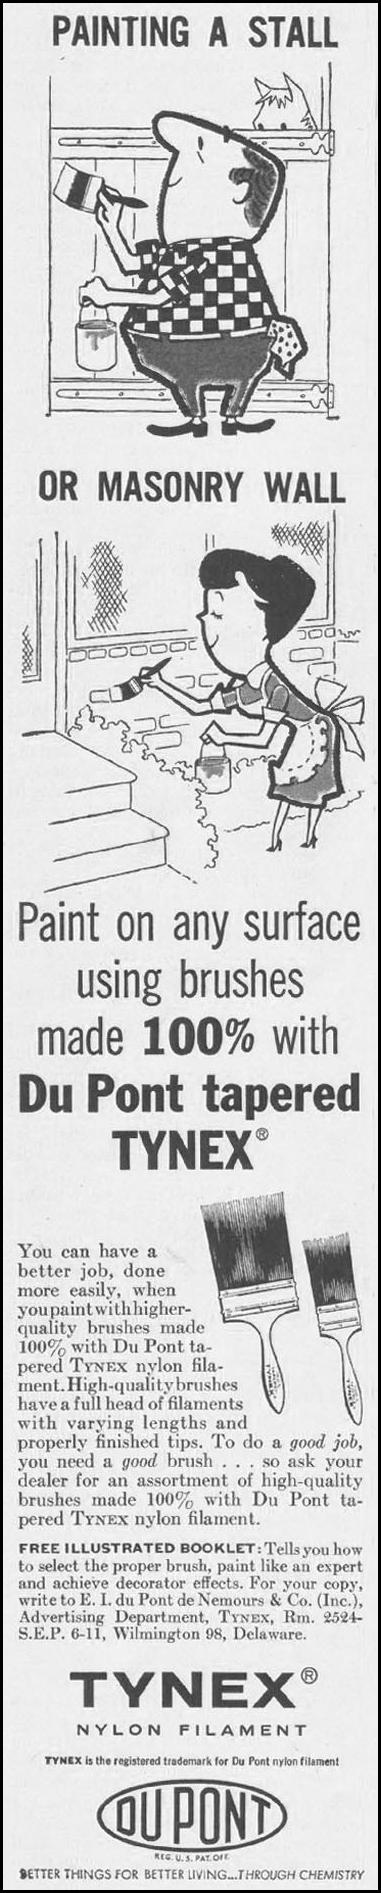 TYNEX NYLON FILAMENT PAINT BRUSHES SATURDAY EVENING POST 06/11/1960 p. 66